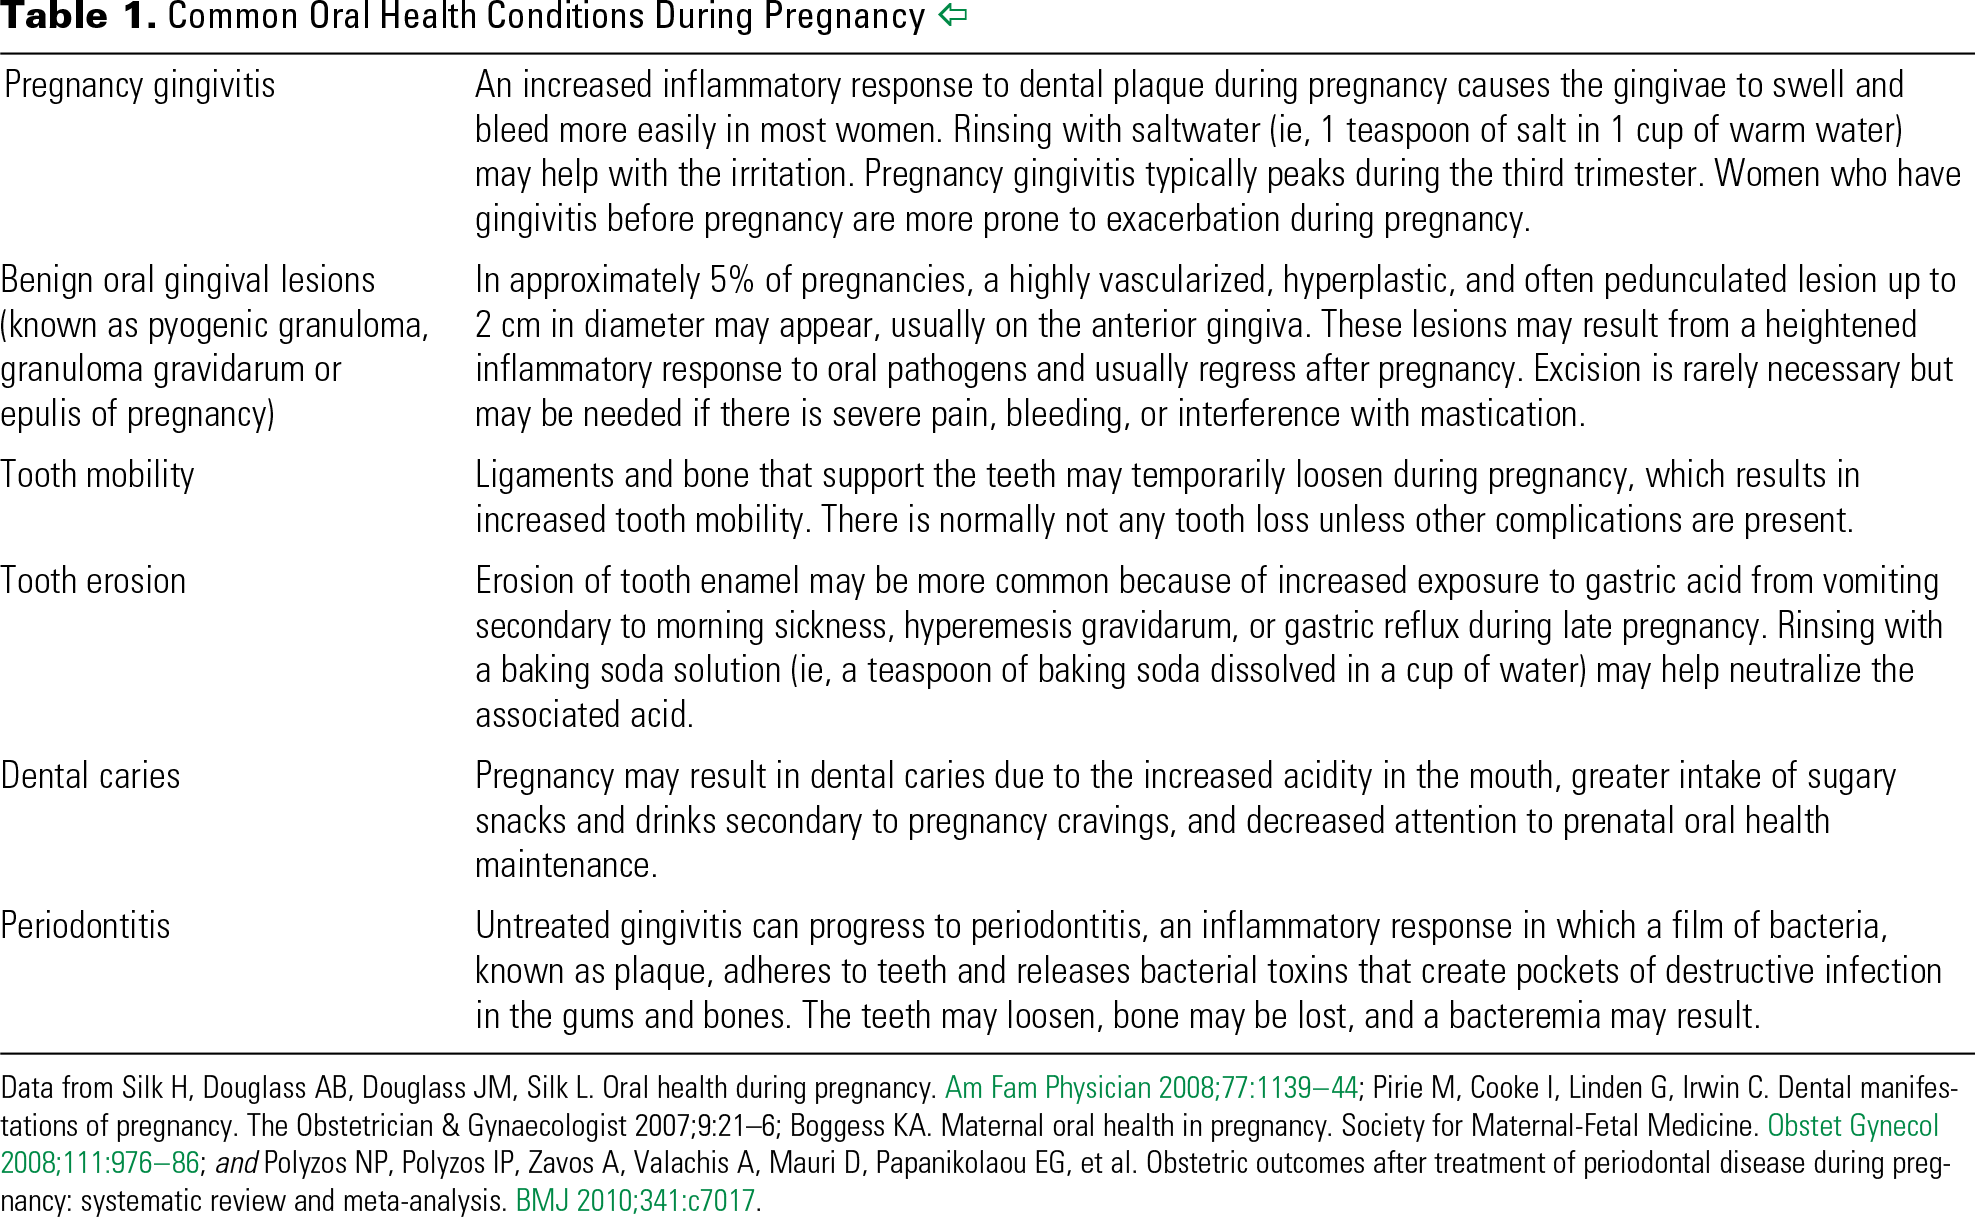 Oral Health Care During Pregnancy and Through the Lifespan